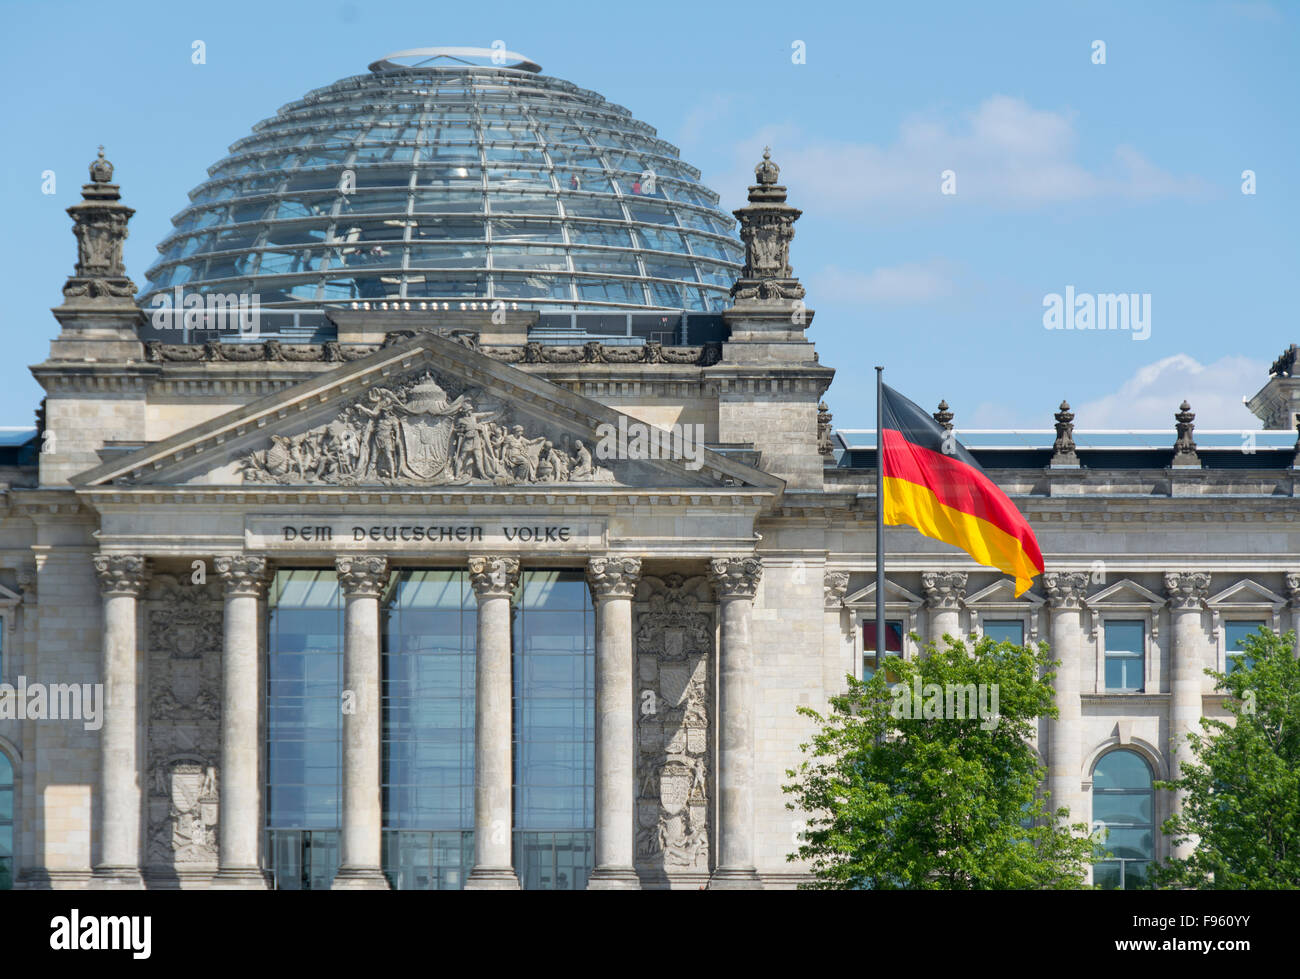 German flag and the Reichstag building, a historical edifice in Berlin, Germany - Stock Image